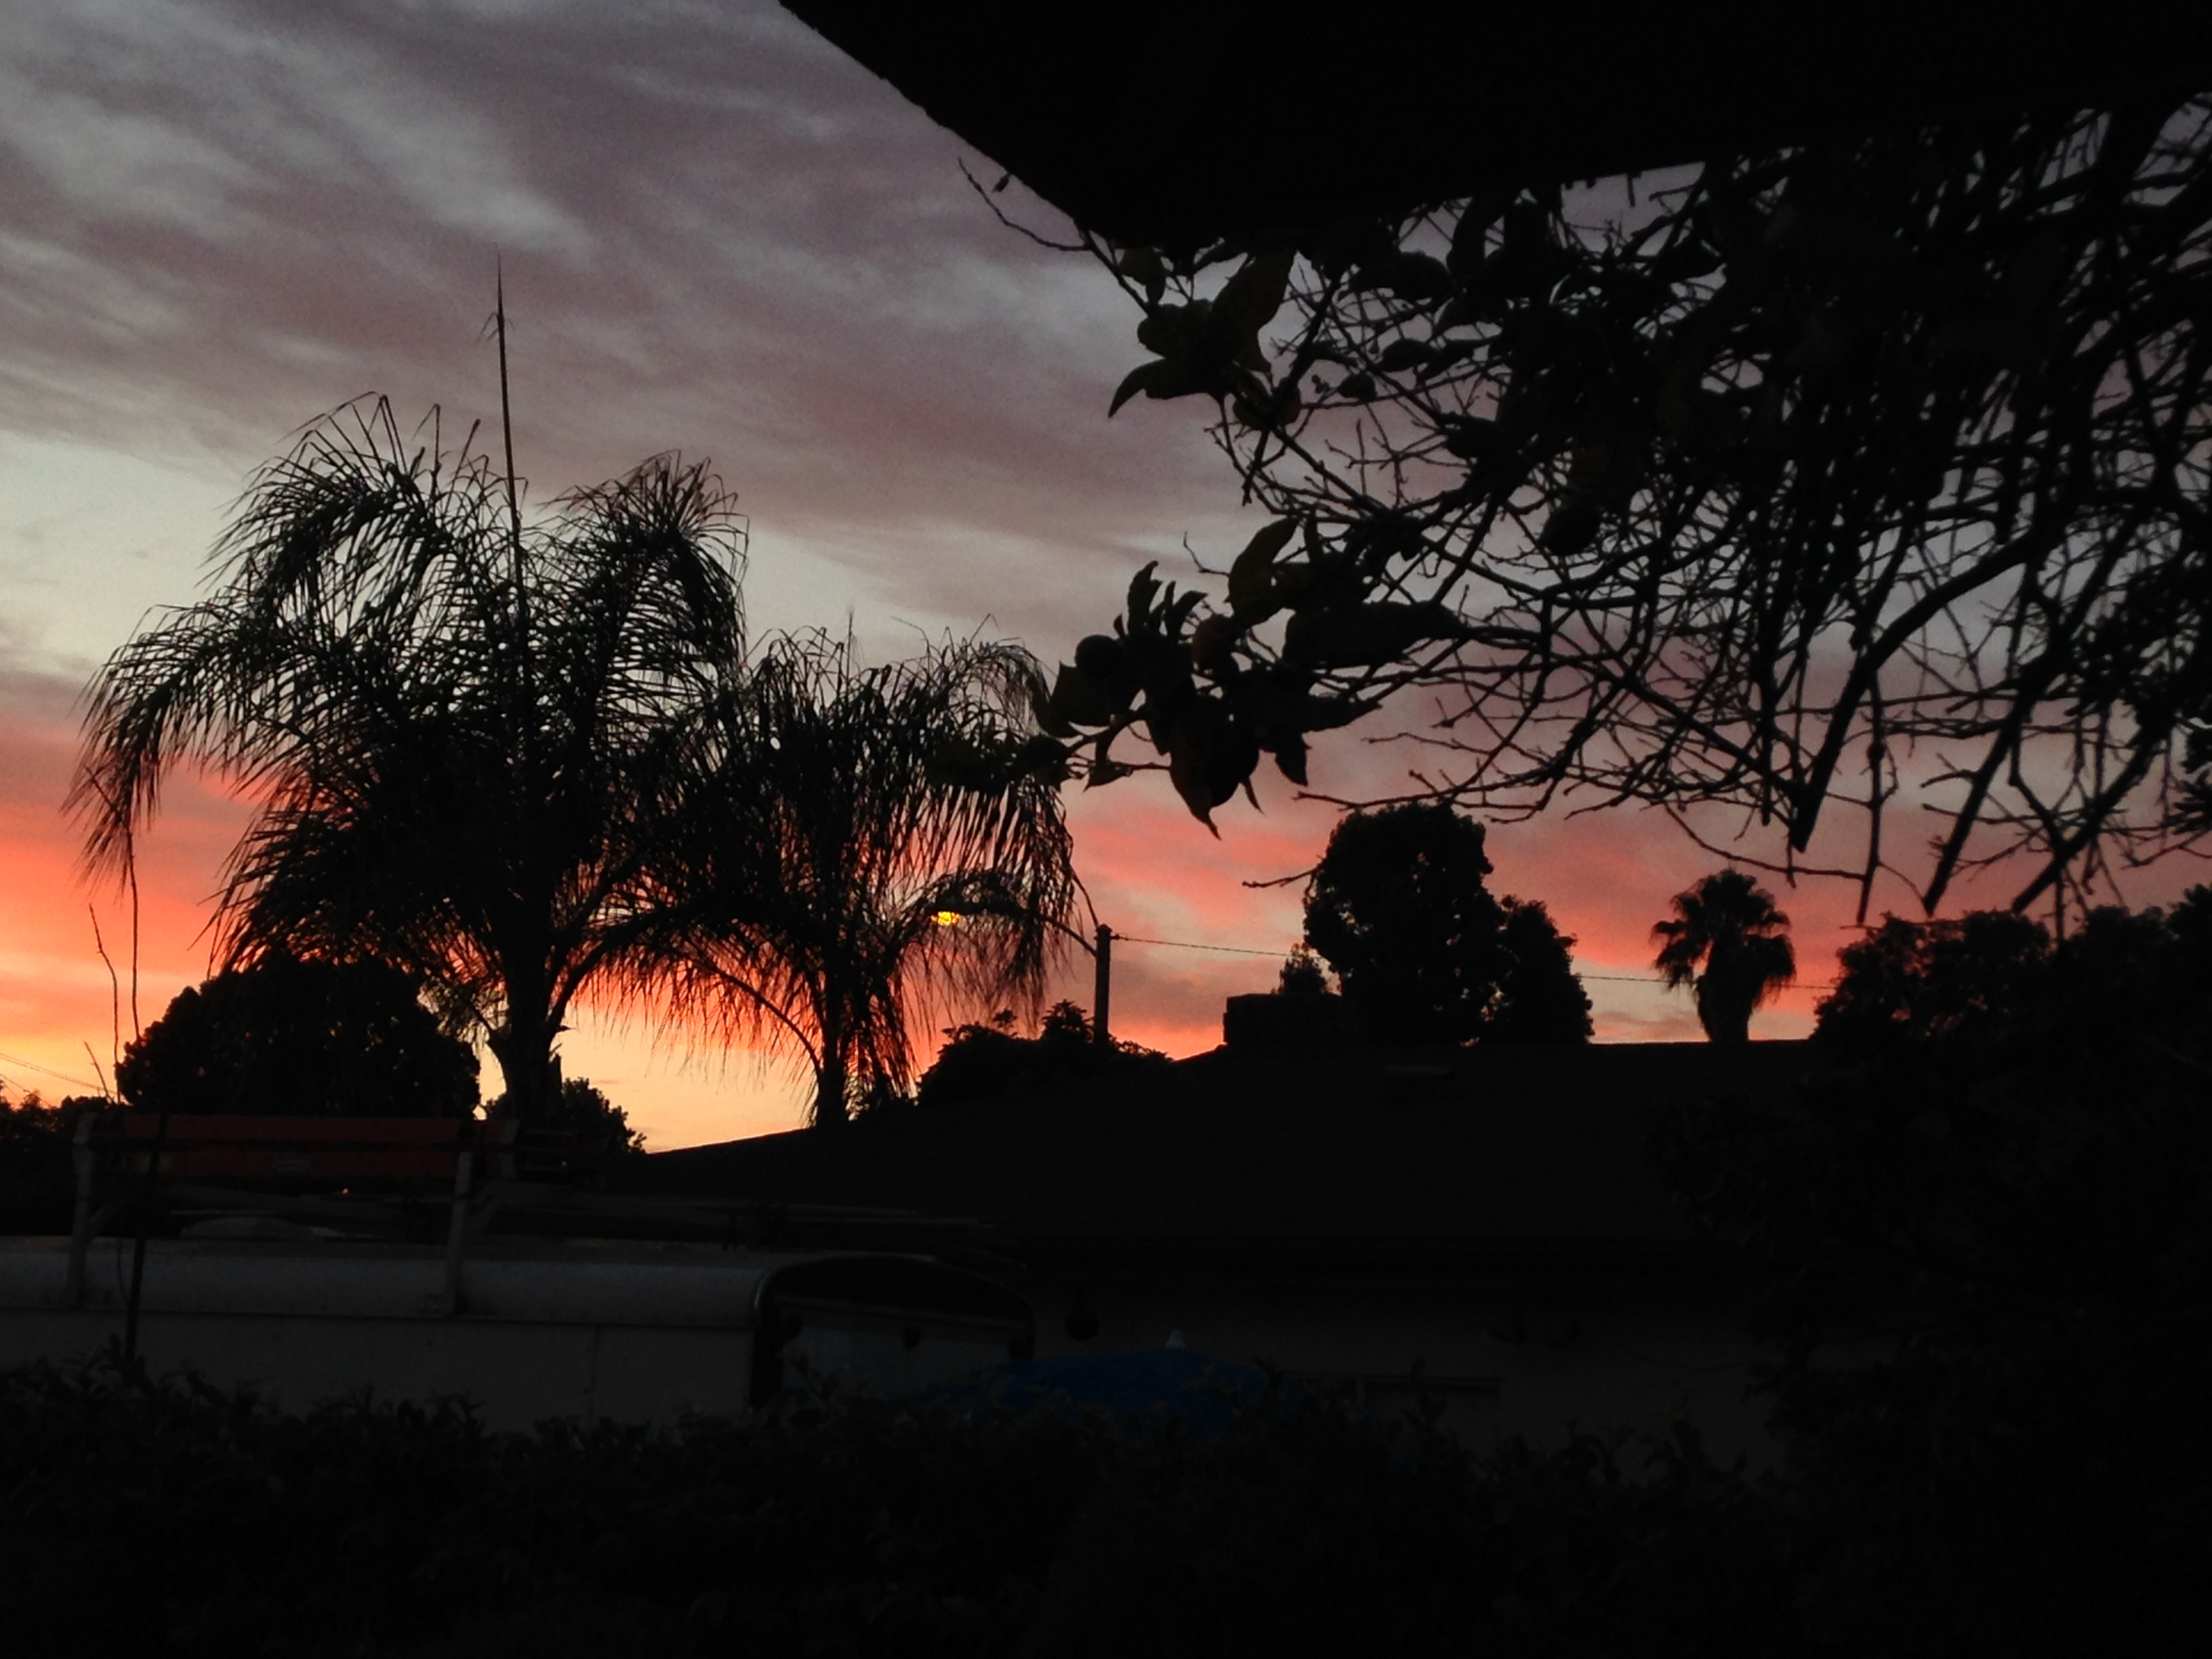 Sunset from my front porch in Burbank.